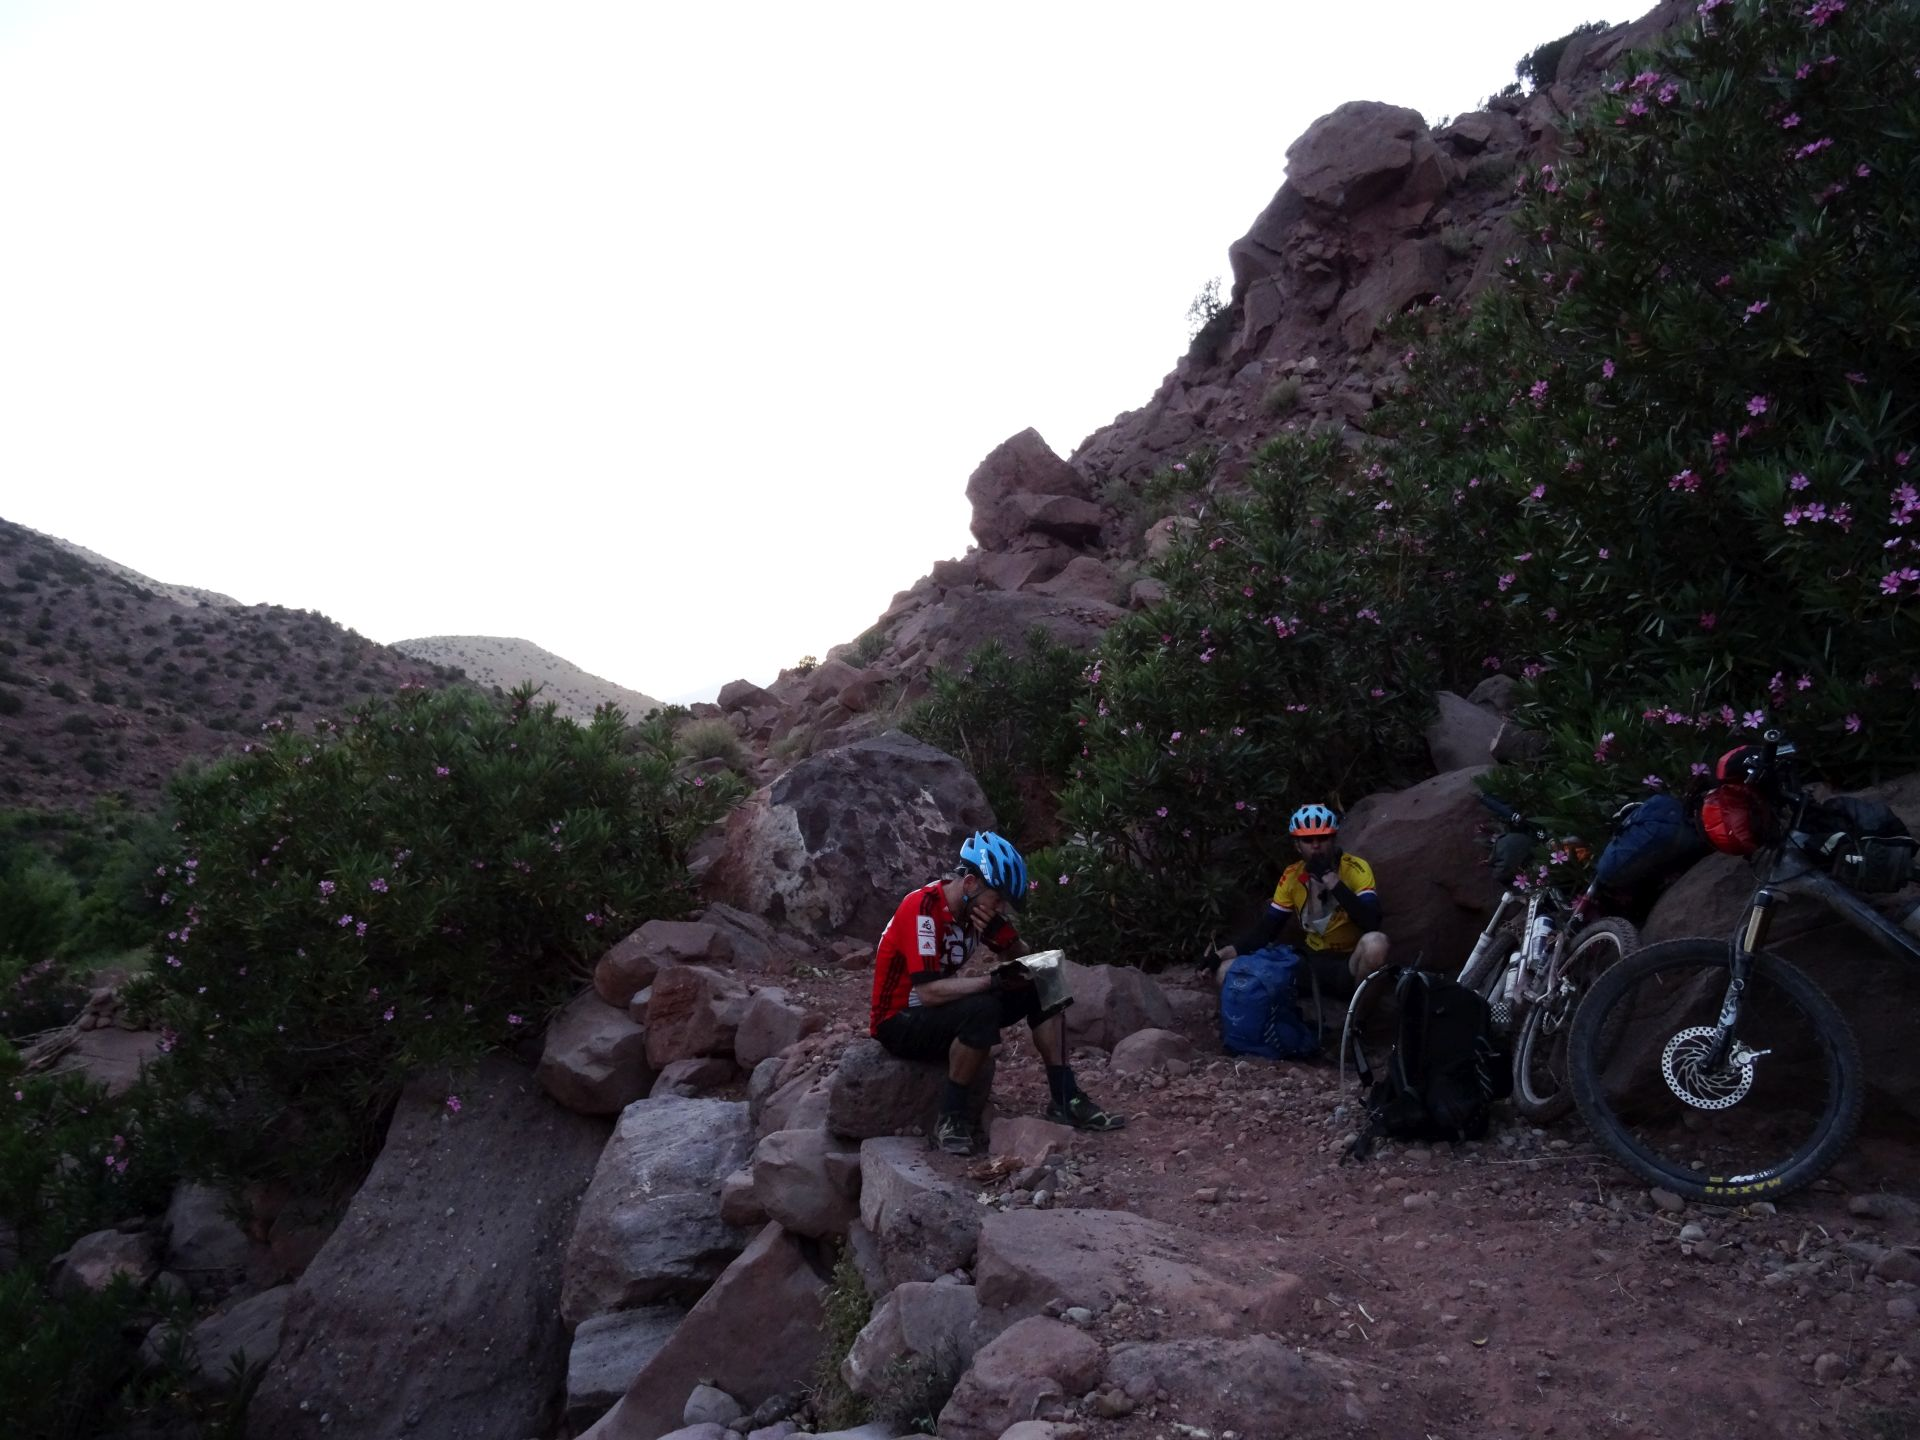 Day 6 - Getting dark, but not there yet! Food & nav break in the dust. Hauling bikes over boulders as big as us is now the norm :( Slow, slow going. On the trail toward Tighza © Steve Woodward